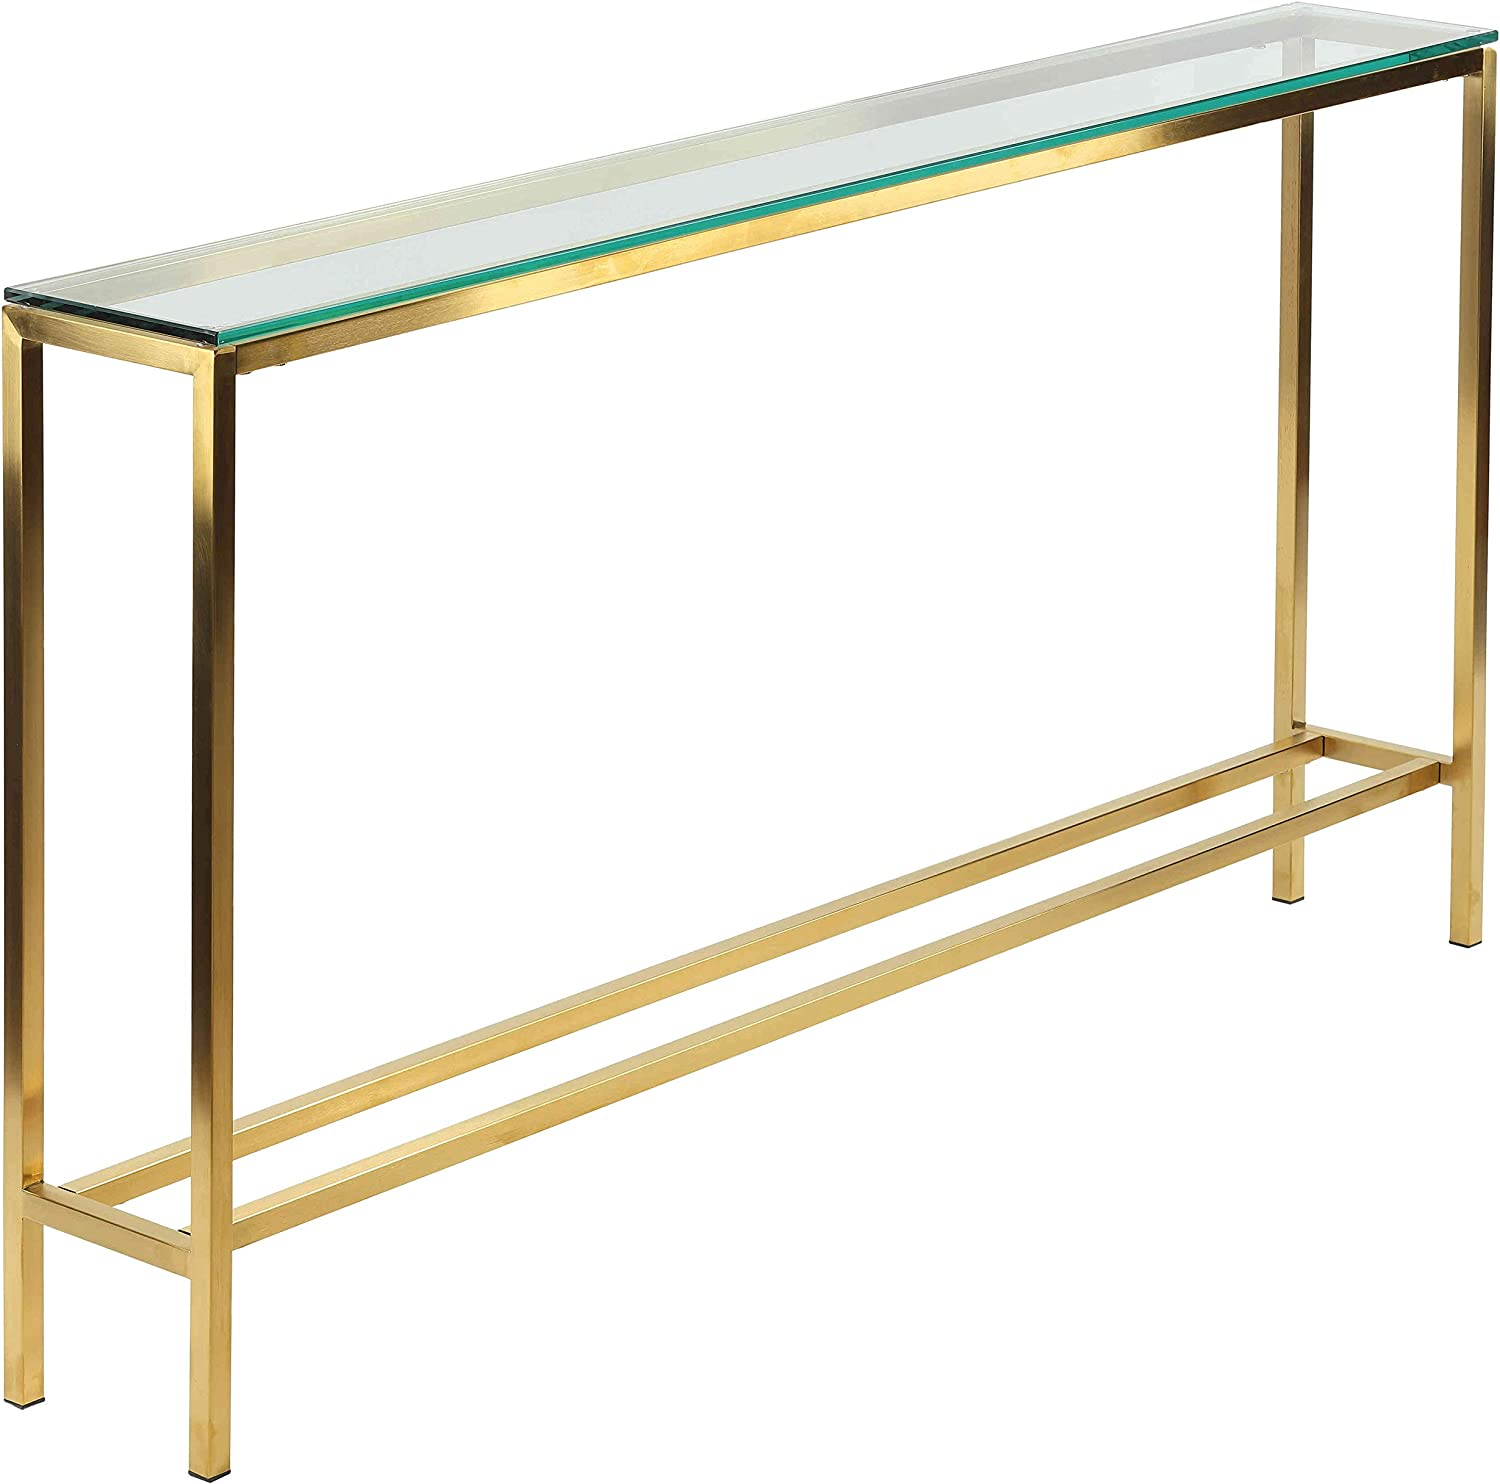 Cortesi Home Juan Console Table Skinny 56 X 8 Brushed Gold Color With Clear 10mm Glass Ch At656930 Furniture Decor